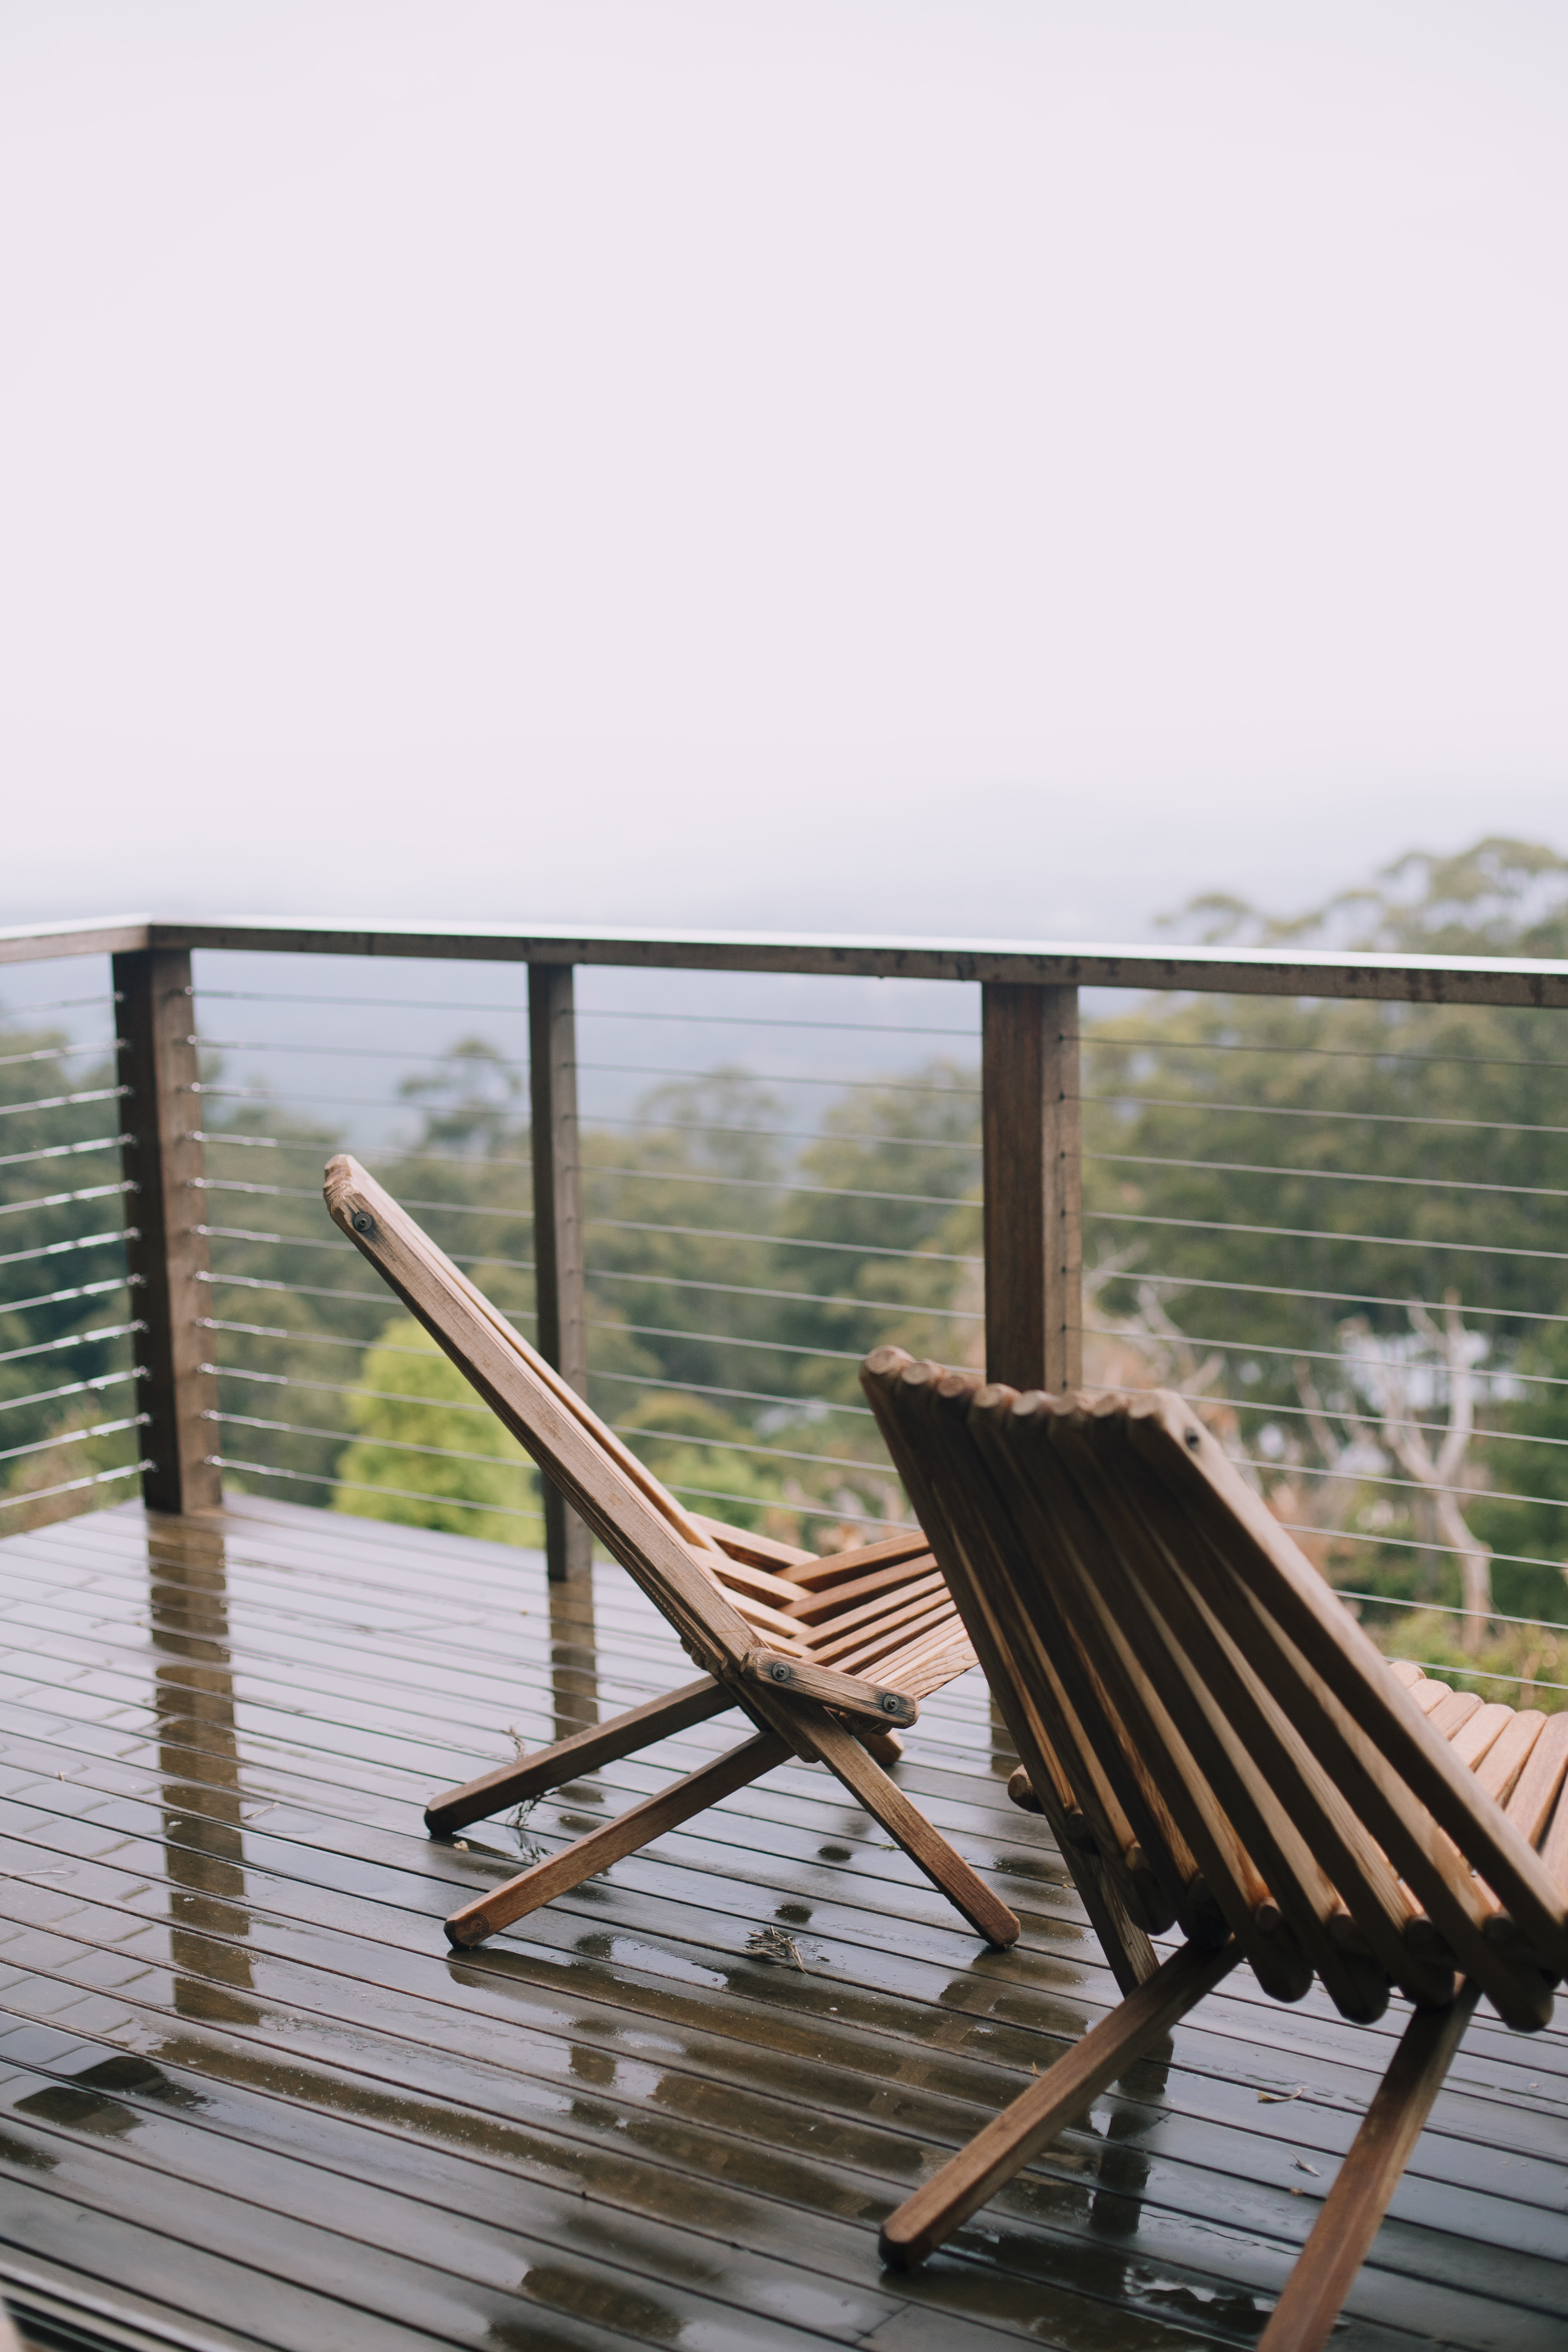 Picture of: Two Brown Wooden Folding Lounge Chairs At The Balcony Photo Free Australia Image On Unsplash